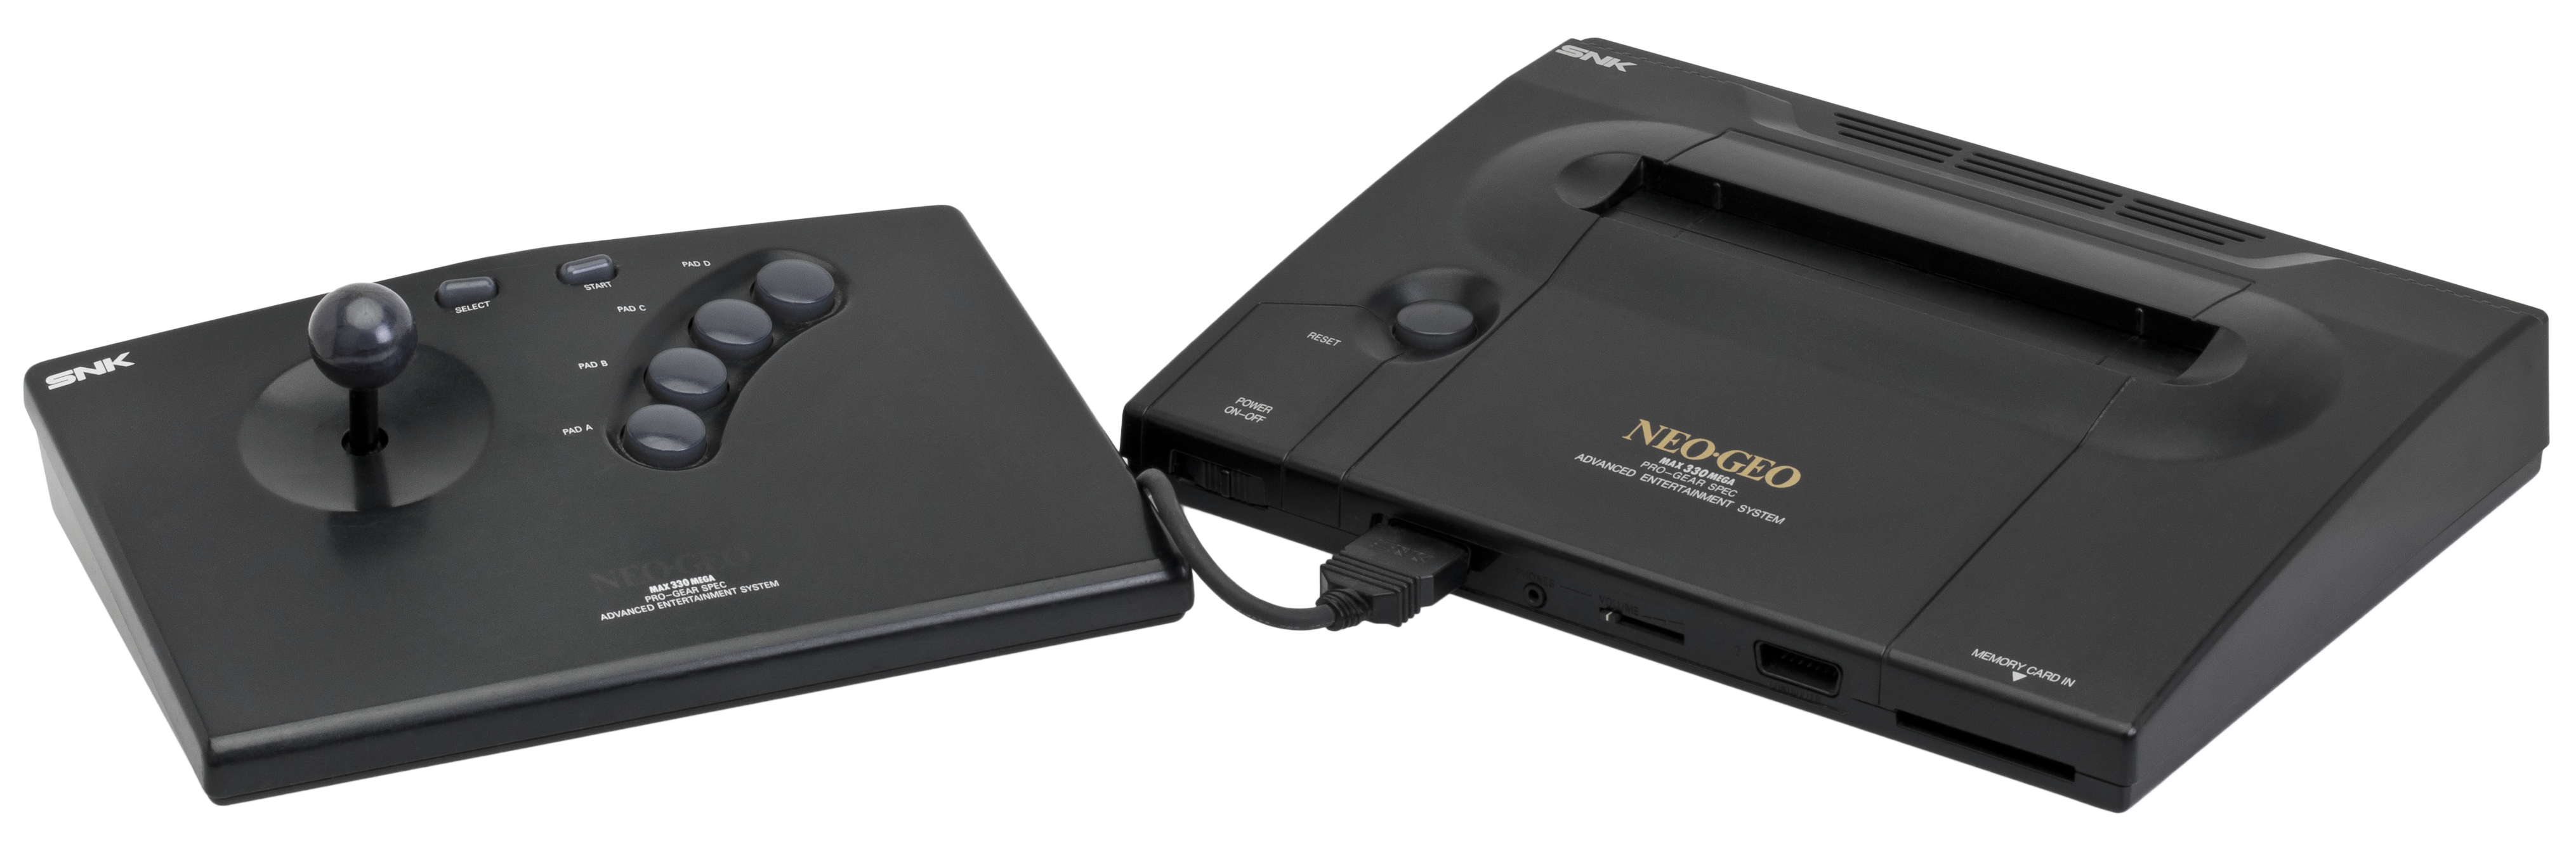 The Neo Geo AES and it's included joystick controller.